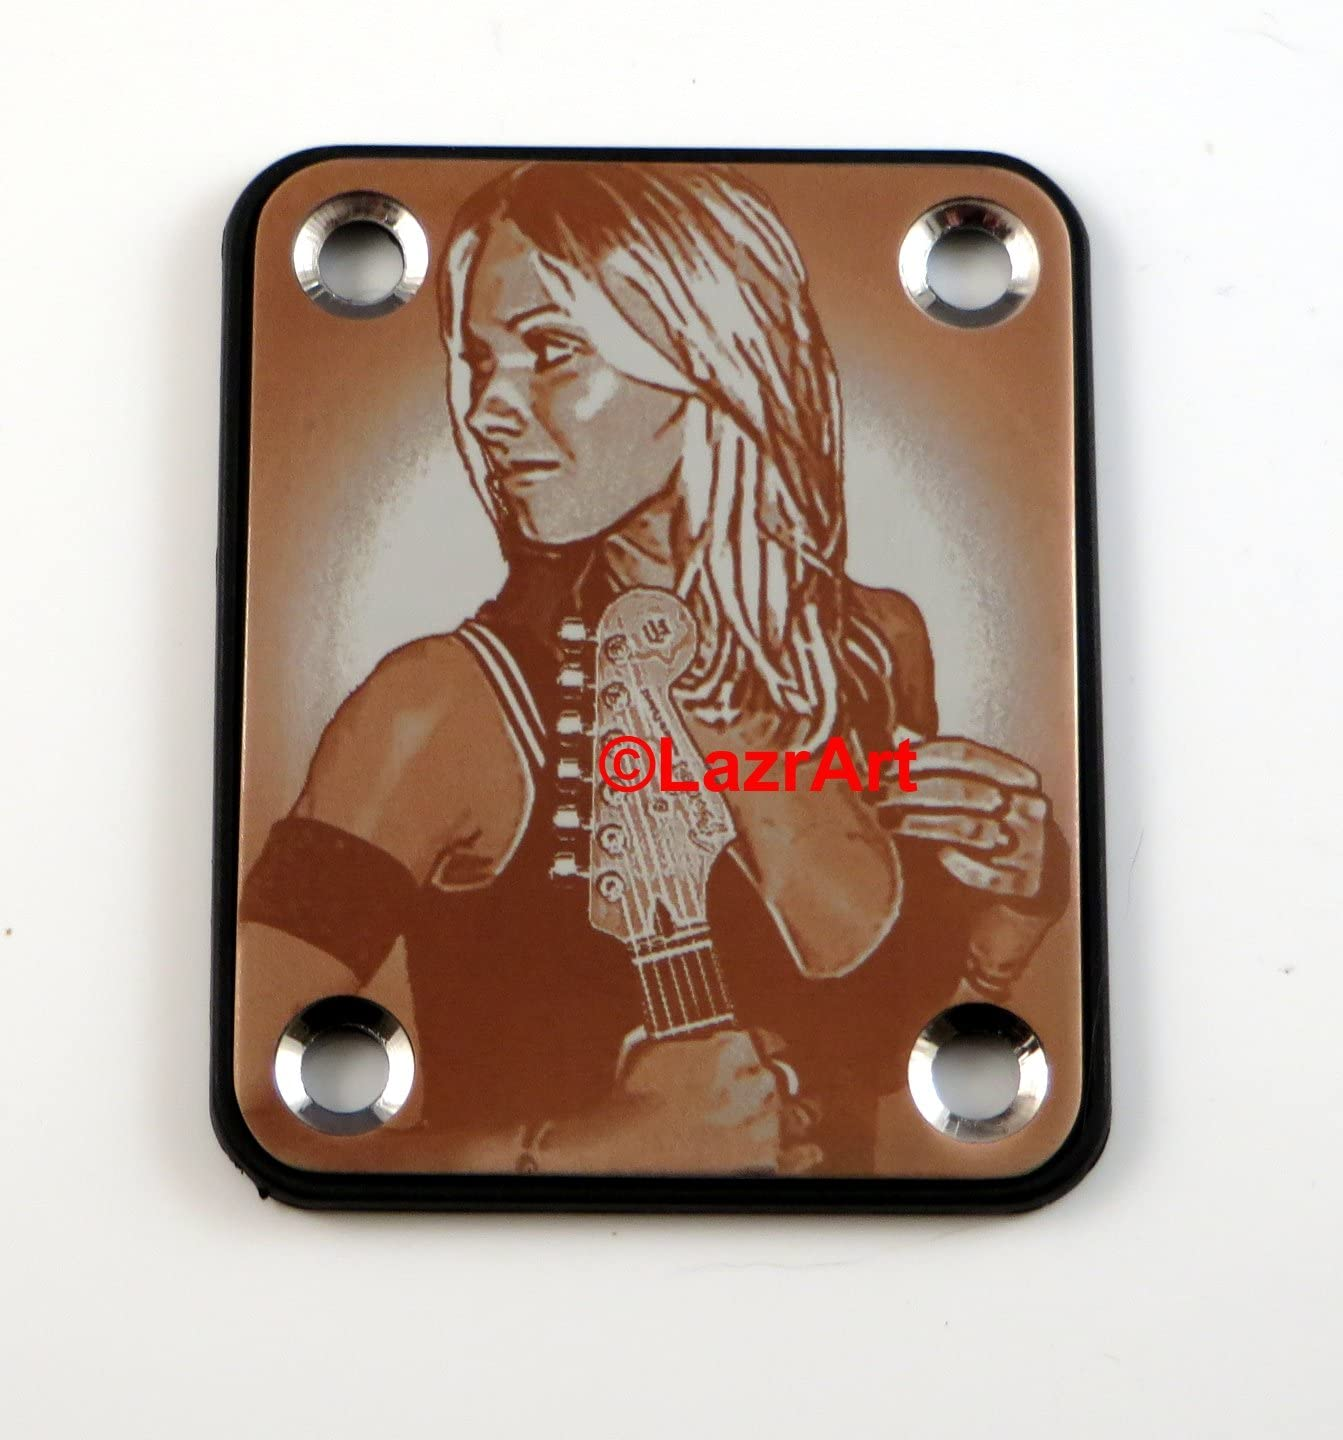 Laser Girl 626 - sexy, Standard 4 Bolt style, engraved guitar neck plate (Silver)